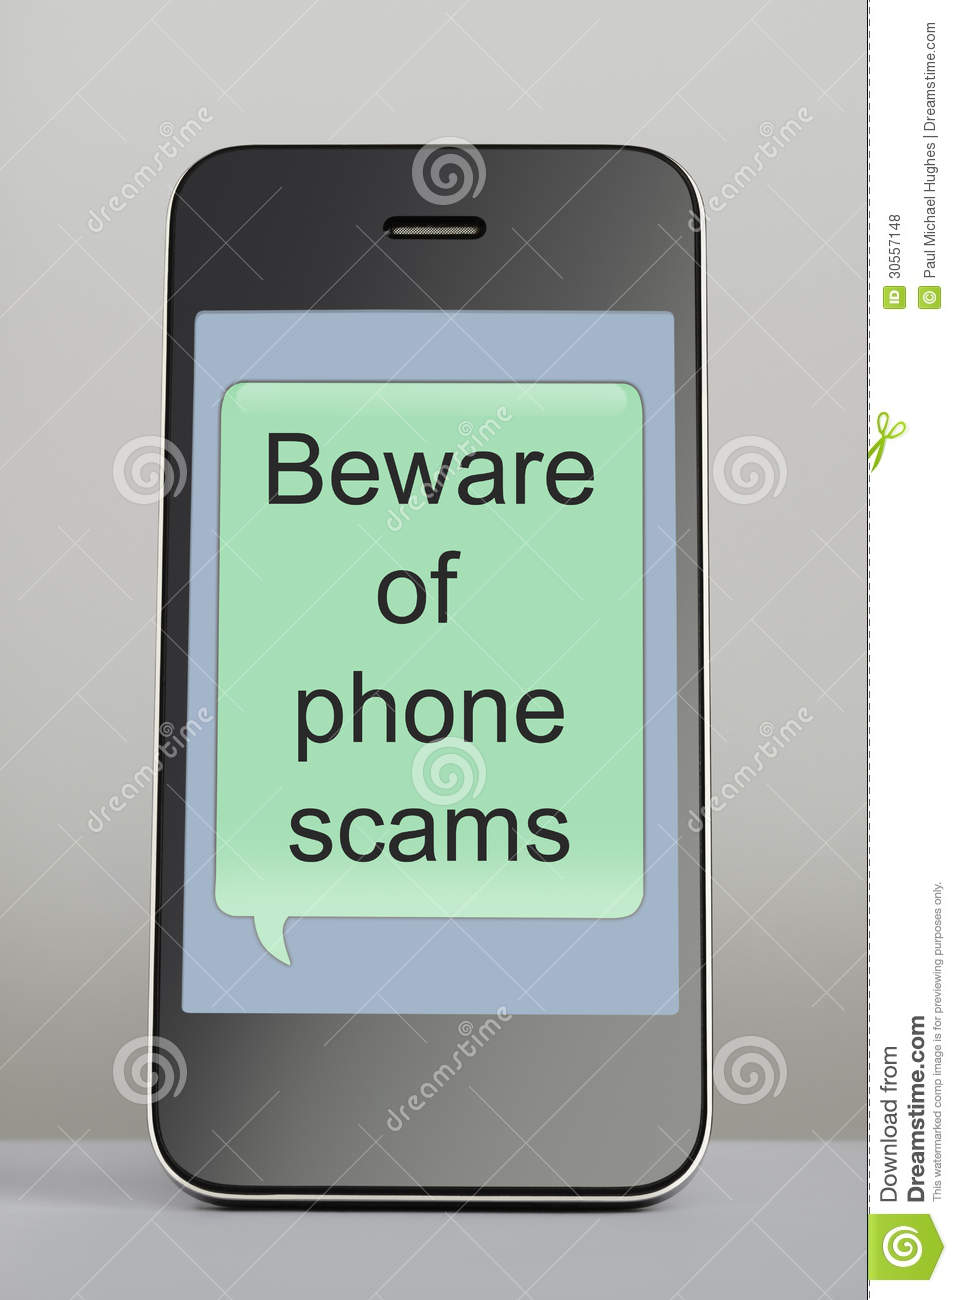 online dating cell phone scams The nigerian dating scams target  they will usually hire someone with an appropriate accent for the phone  per our online telephone message on our cell.